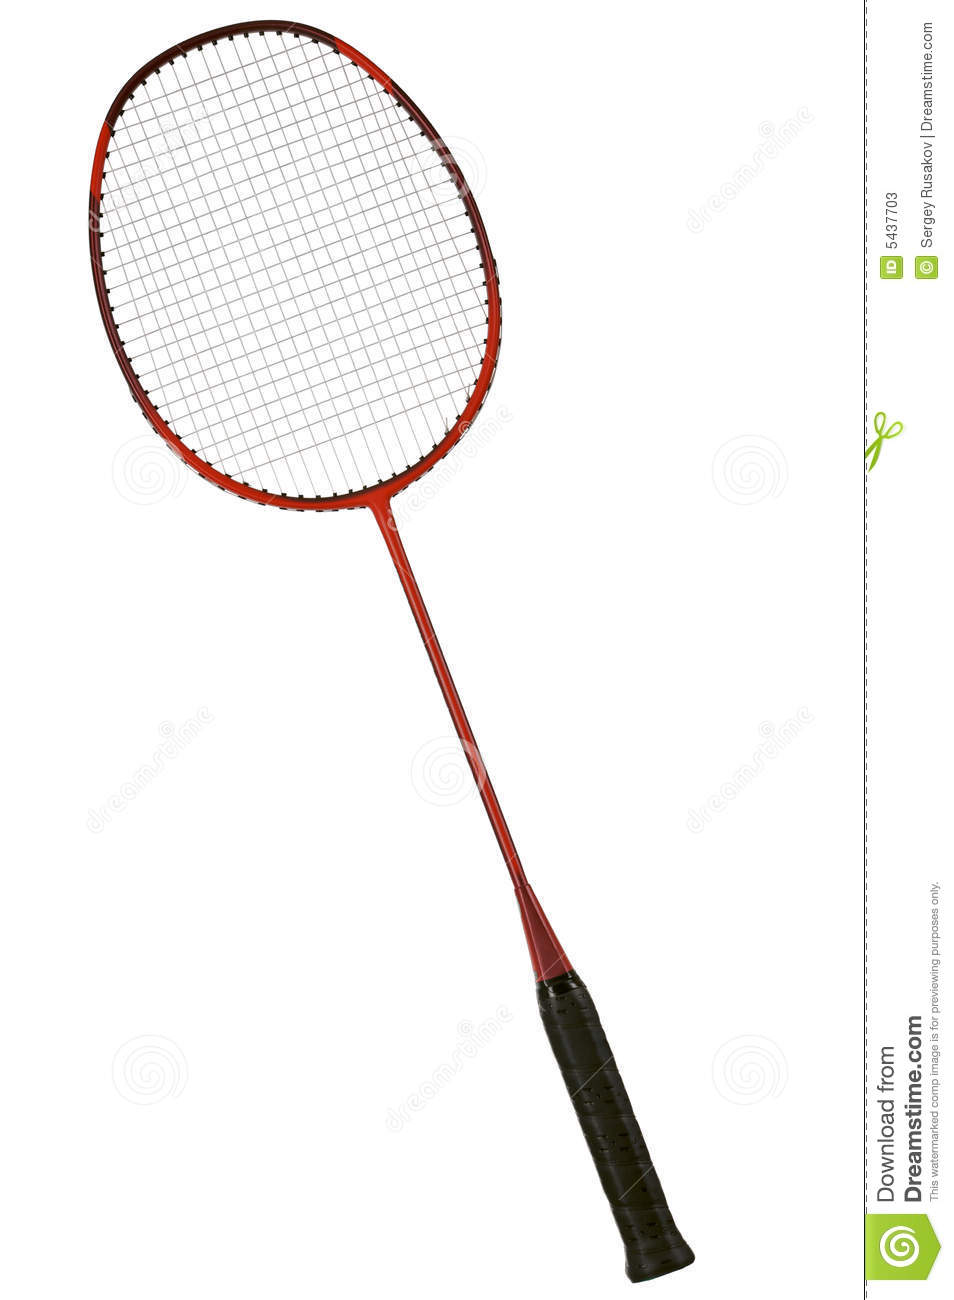 Badminton racket stock image. Image of space, equipment - 5437703